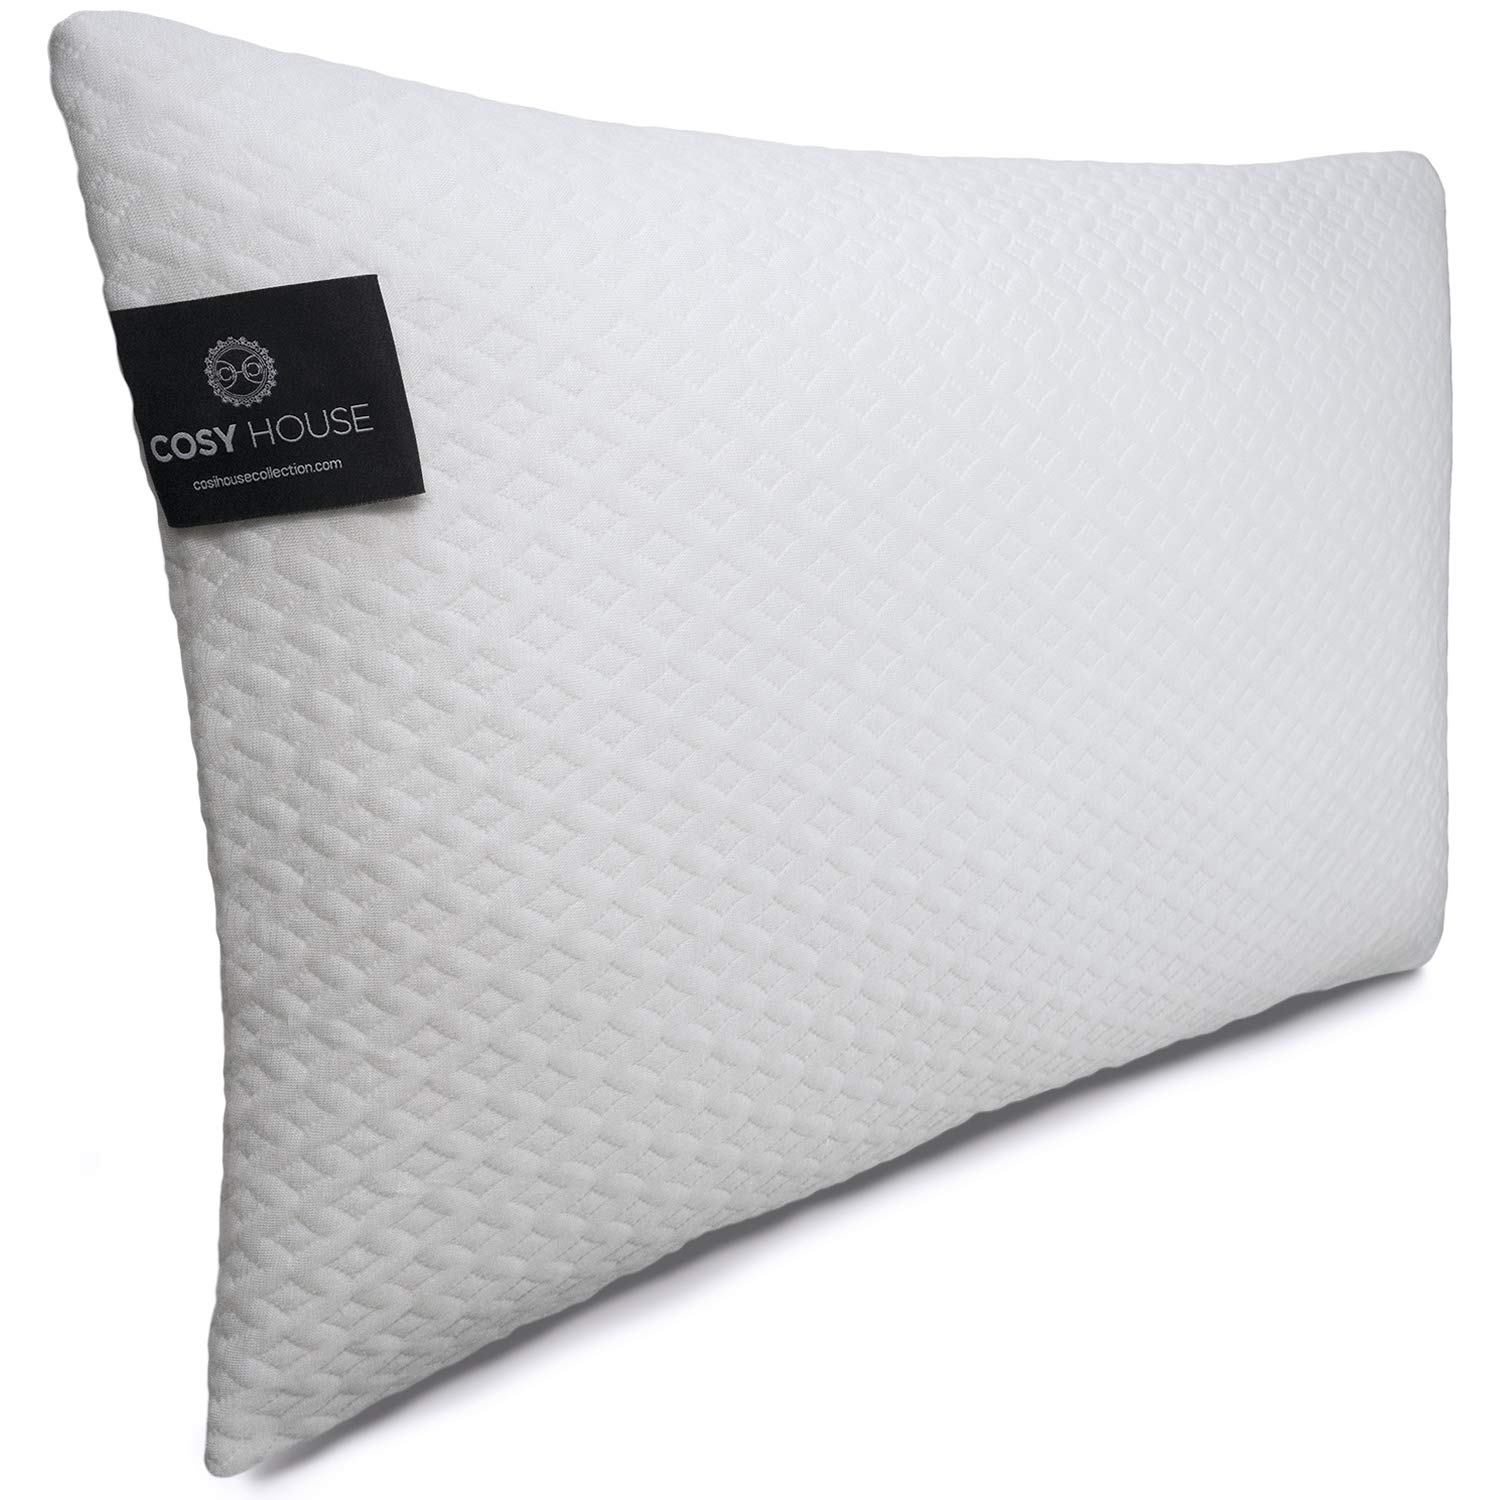 Cosy House Collection Luxury Bamboo Shredded Memory Foam Pillow - Adjustable Fit - Removable Fill - Ultra Soft, Cool & Breathable Hypoallergenic Cover with Zipper Closure (Queen)